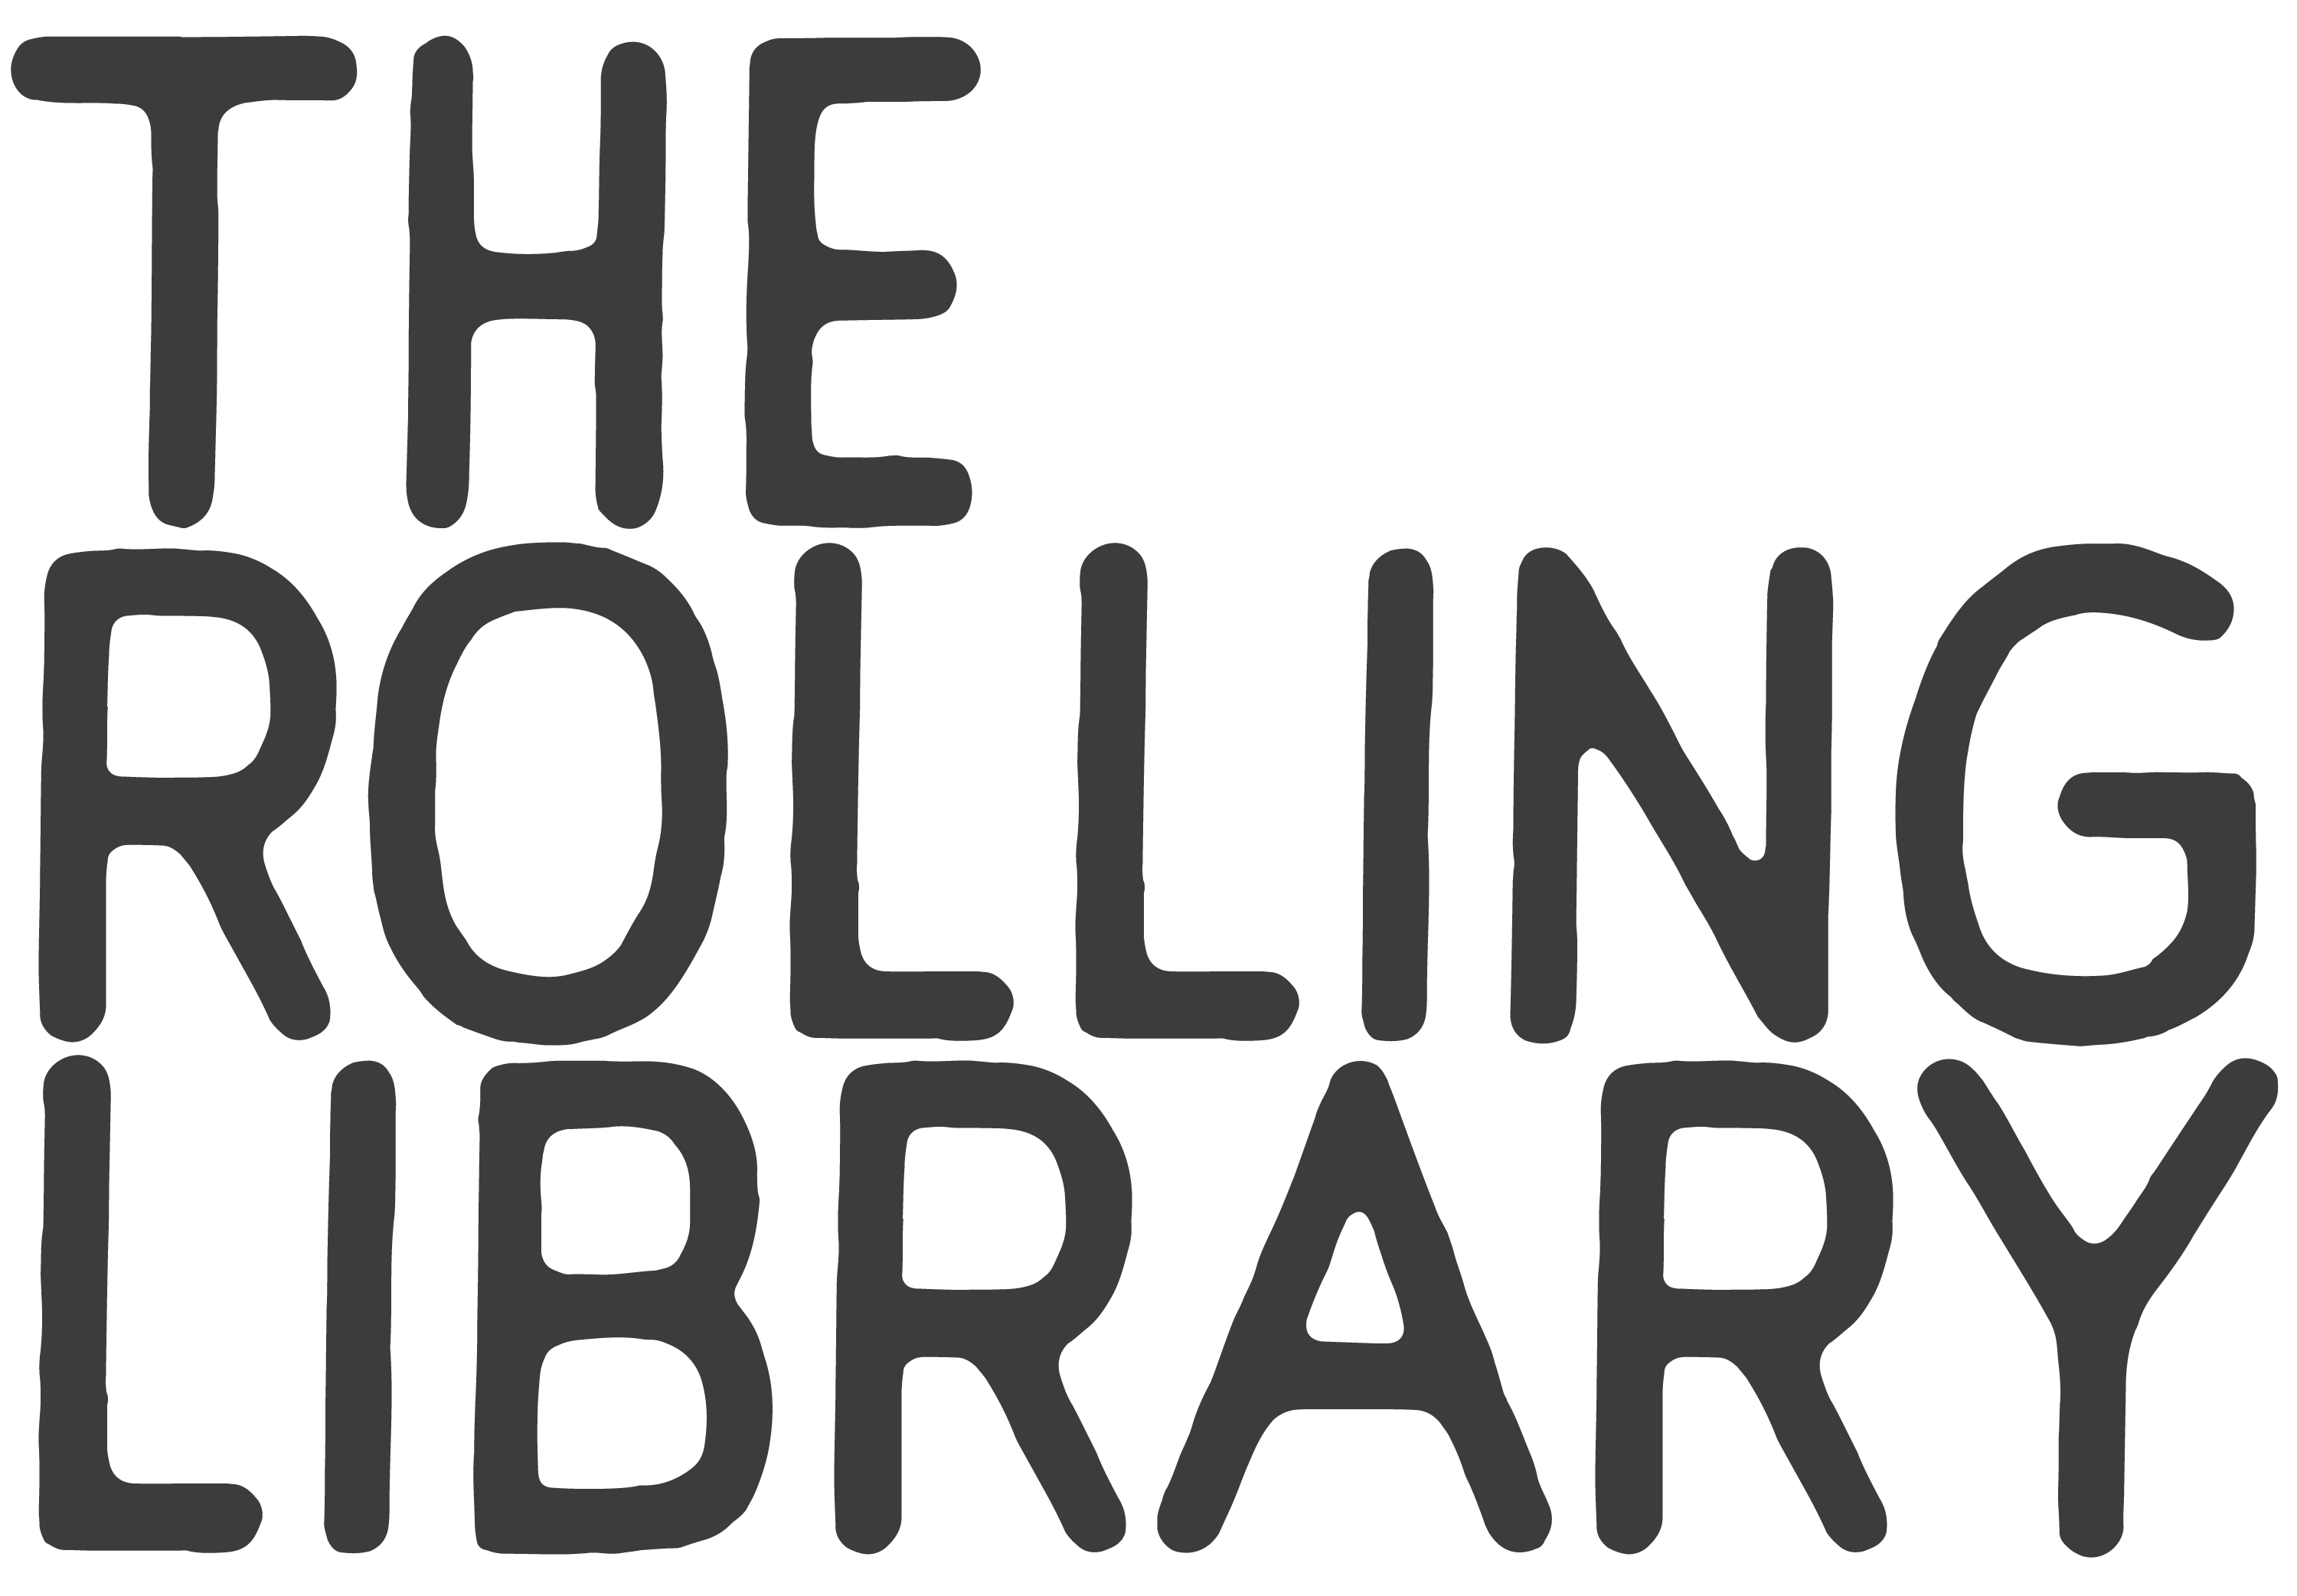 The Rolling Library